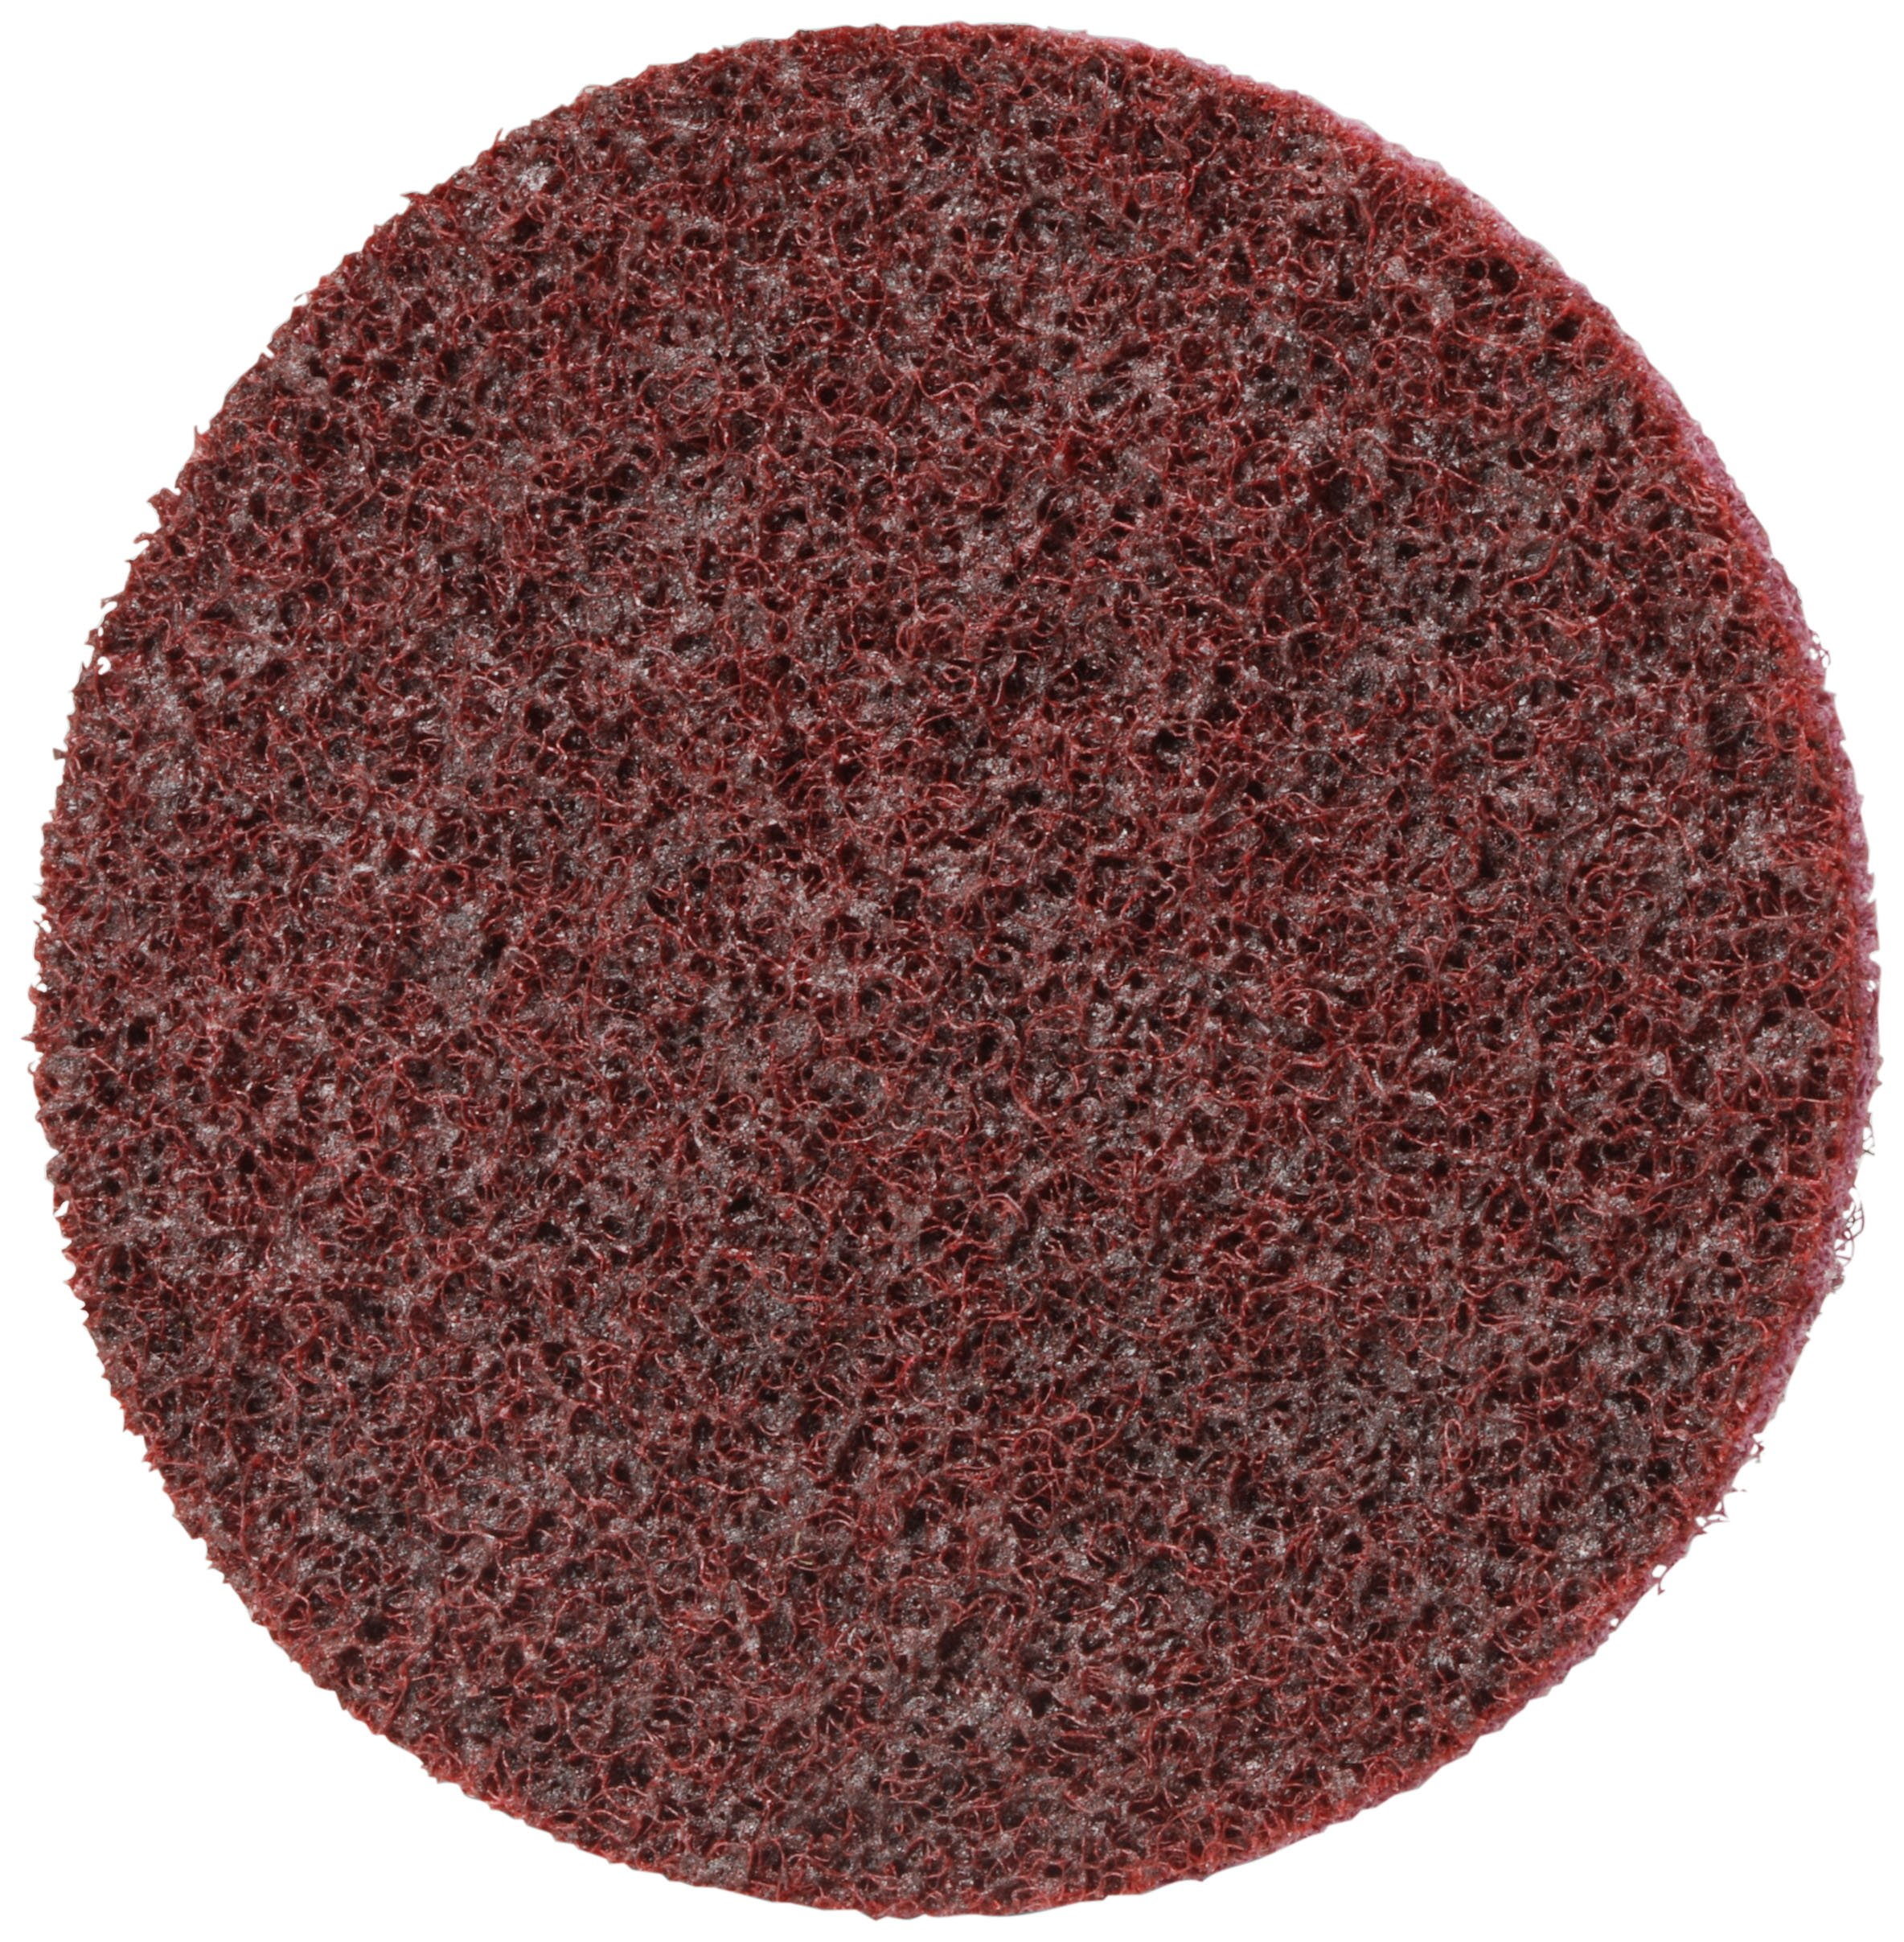 Scotch-Brite(TM) SL Surface Conditioning Disc, Hook and Loop Attachment, Aluminum Oxide, 7 Diameter, A Medium Grit (Pack of 25)